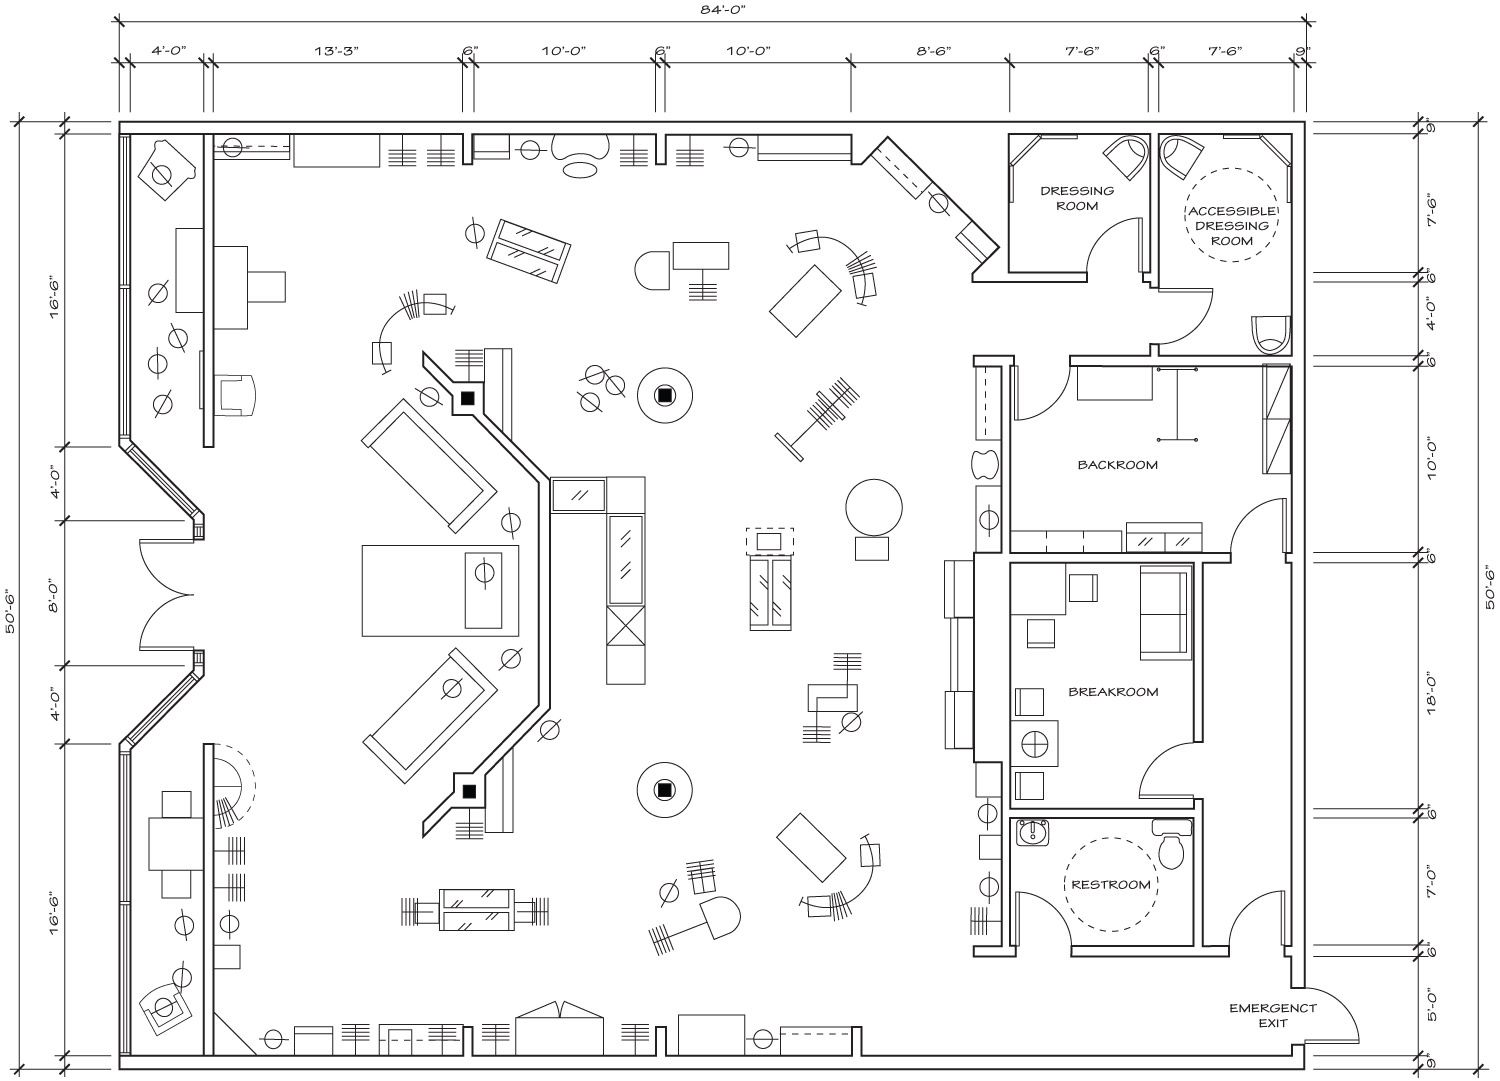 Retail floor plan google search retail planogram for Floor plan search